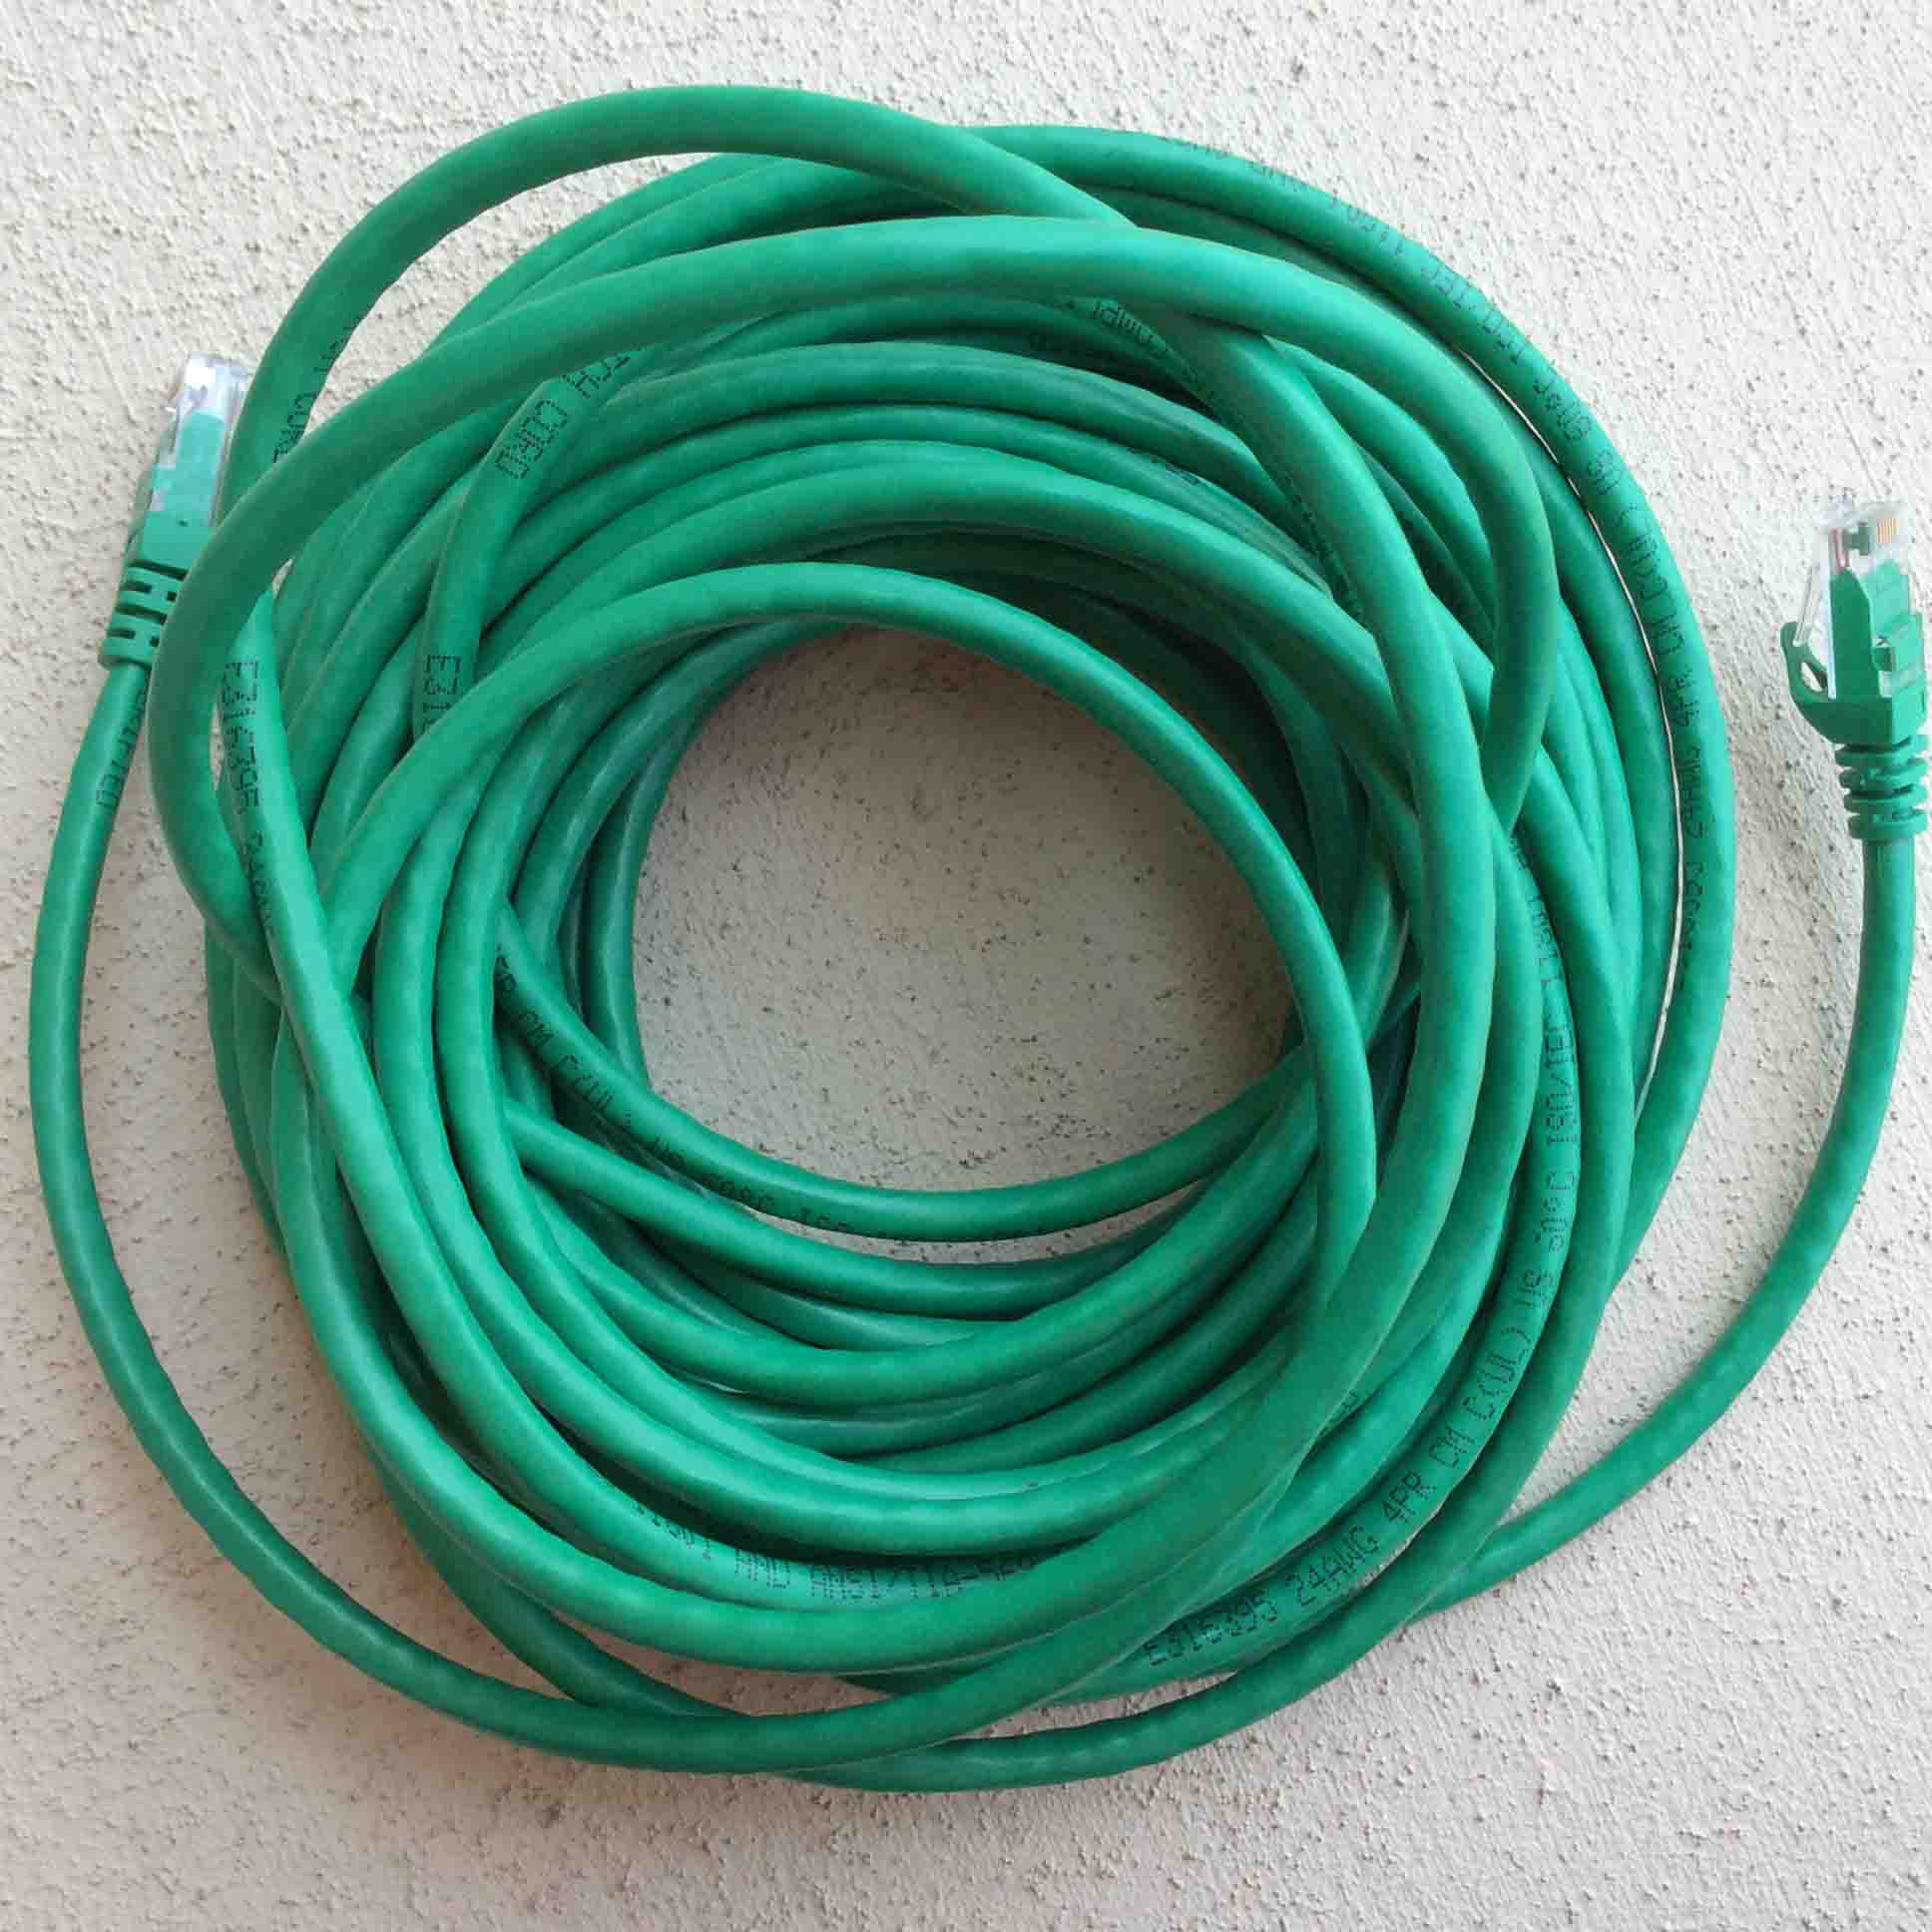 Recognizing High Quality Ethernet Network Cables Toms Tek Stop Cable Connector Wiring Picture Of A 50 Ft Cat 6 Lan Patch